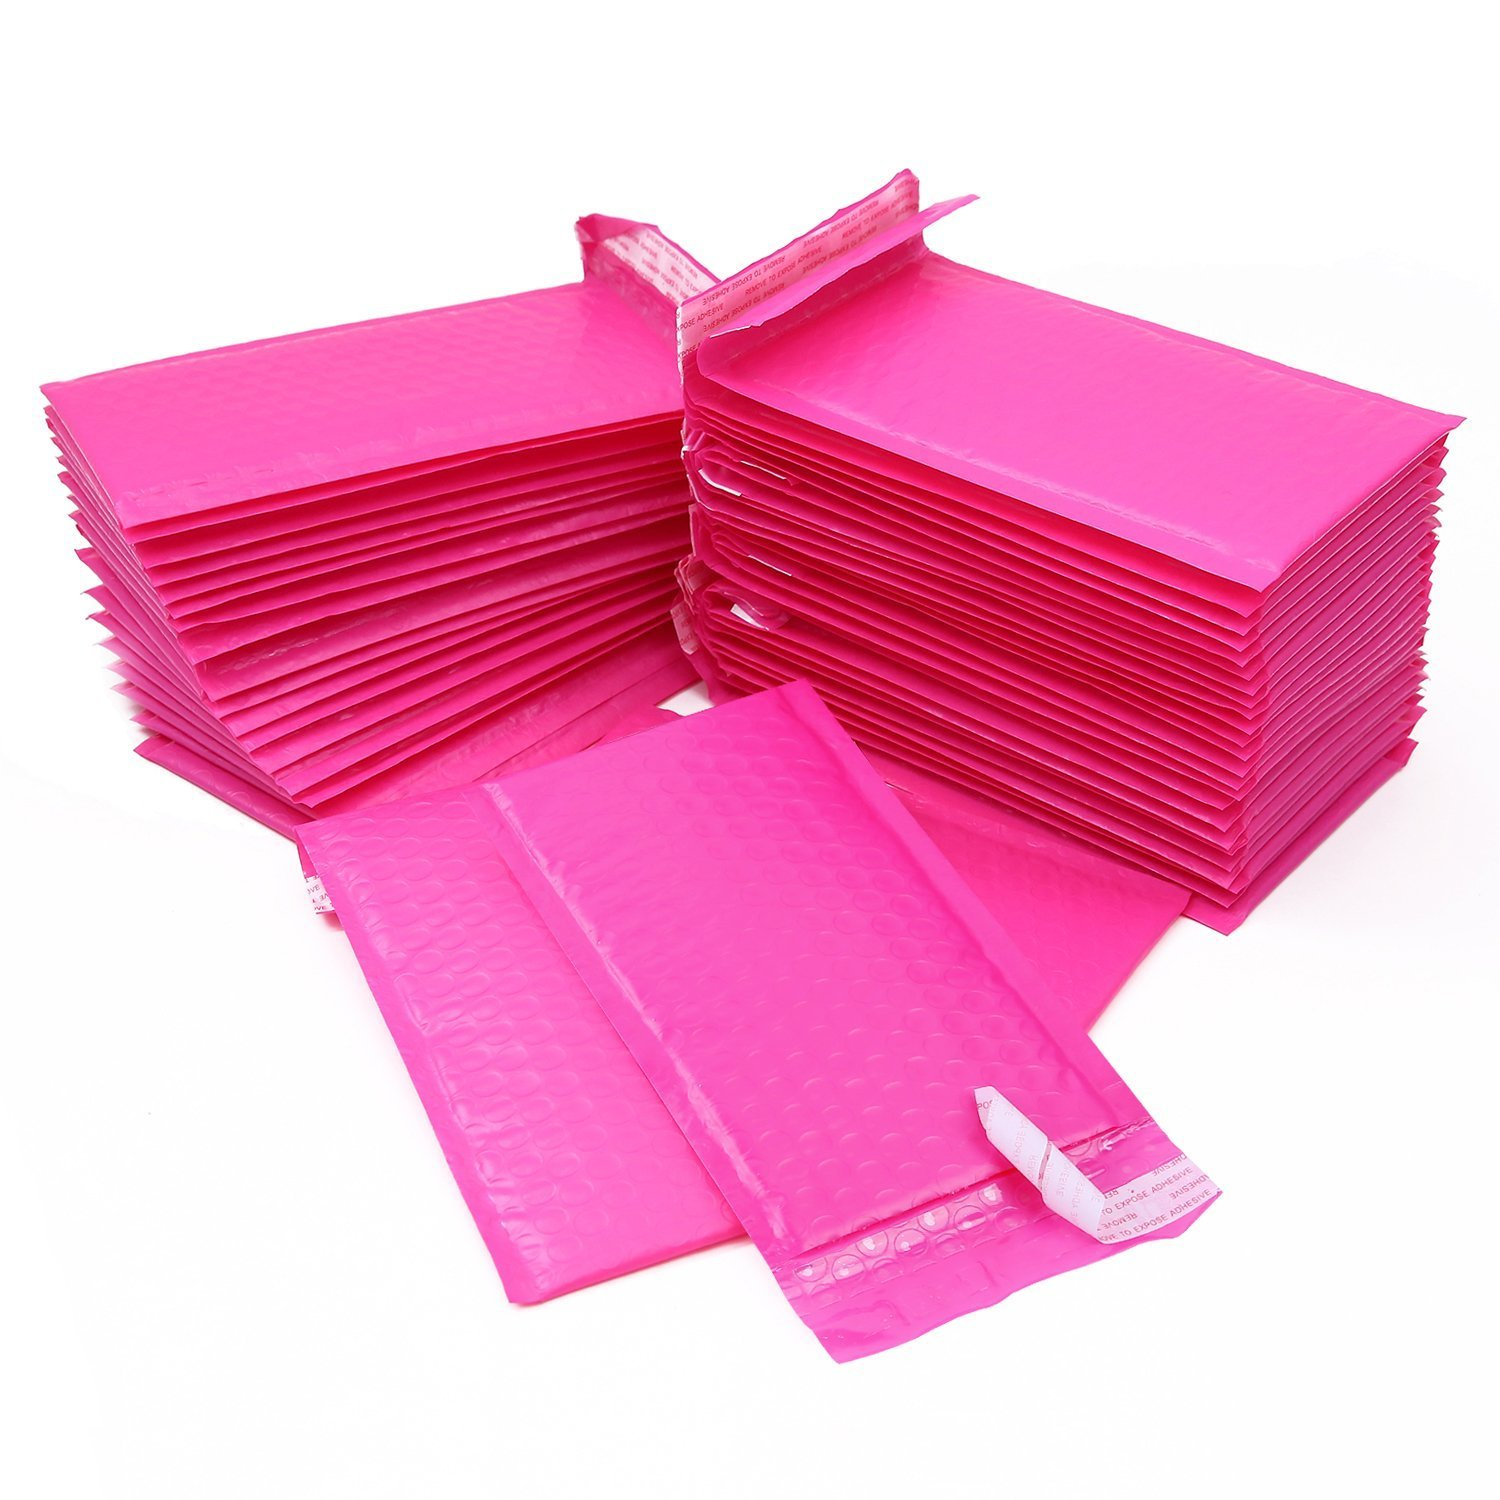 Pink Bubble Poly Mailers, Ohuhu 4x8 50-Pack Hot Pink Bubble Padded Poly Mailer Shipping Envelope Bags with Self Adhesive Strip, Water Resistant